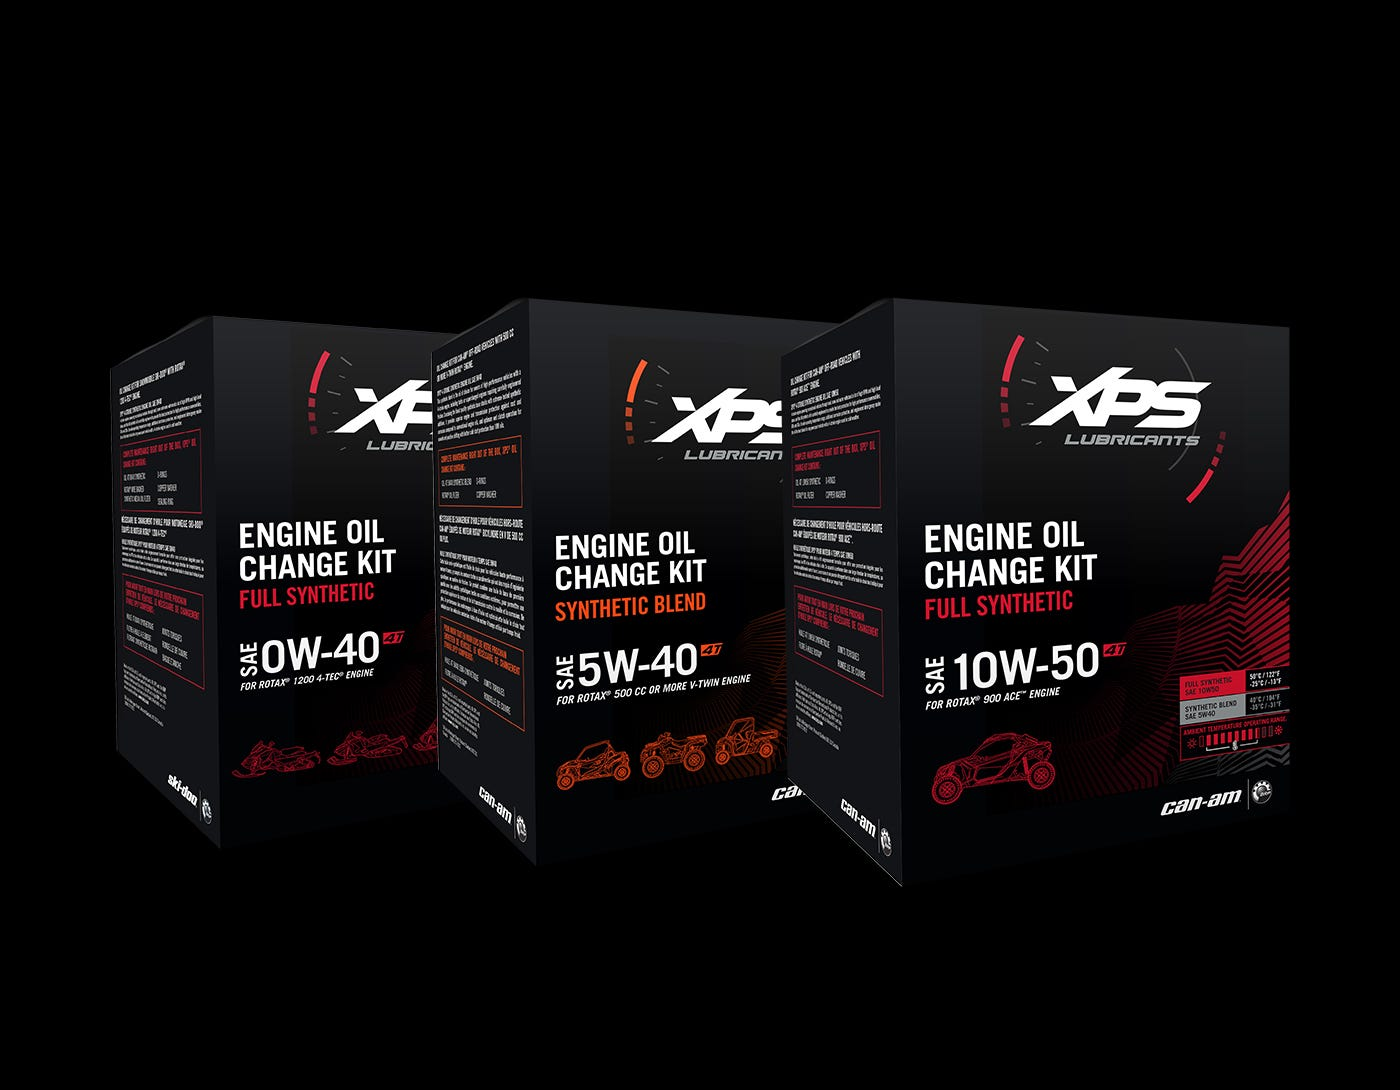 XPS Oil Change Kits